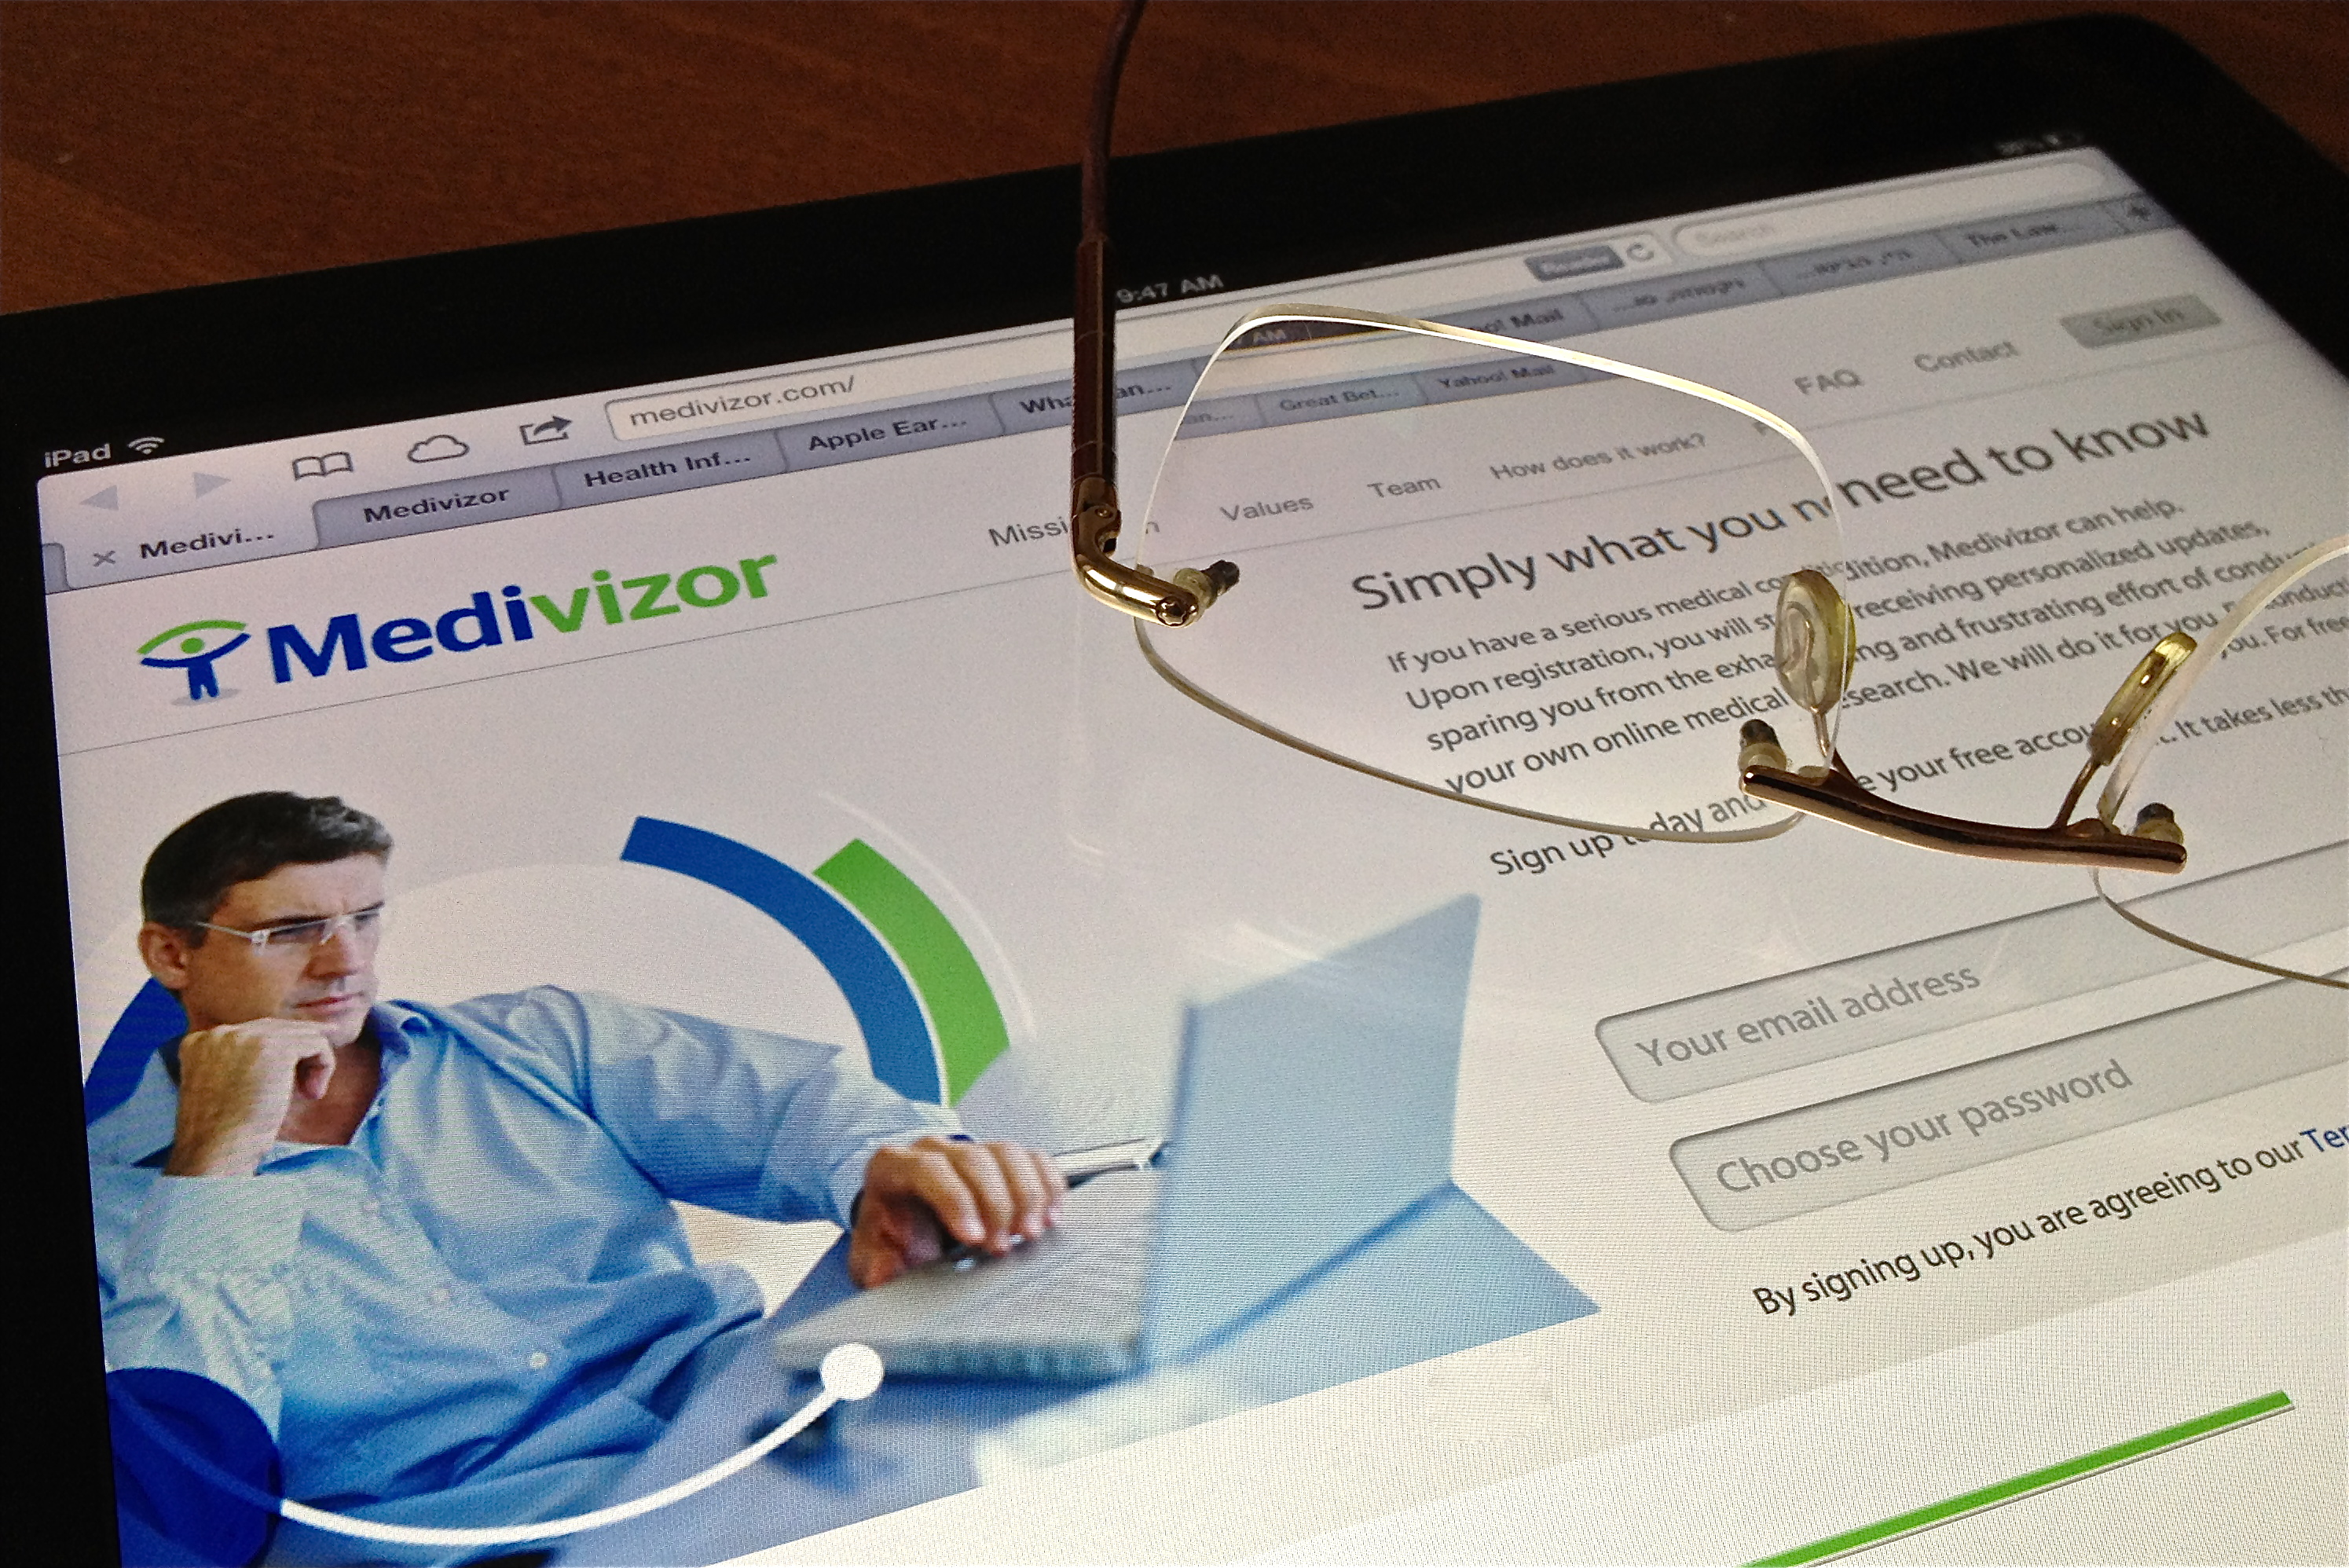 Medivizor expands healthcare literacy platform, adds collaboration partner